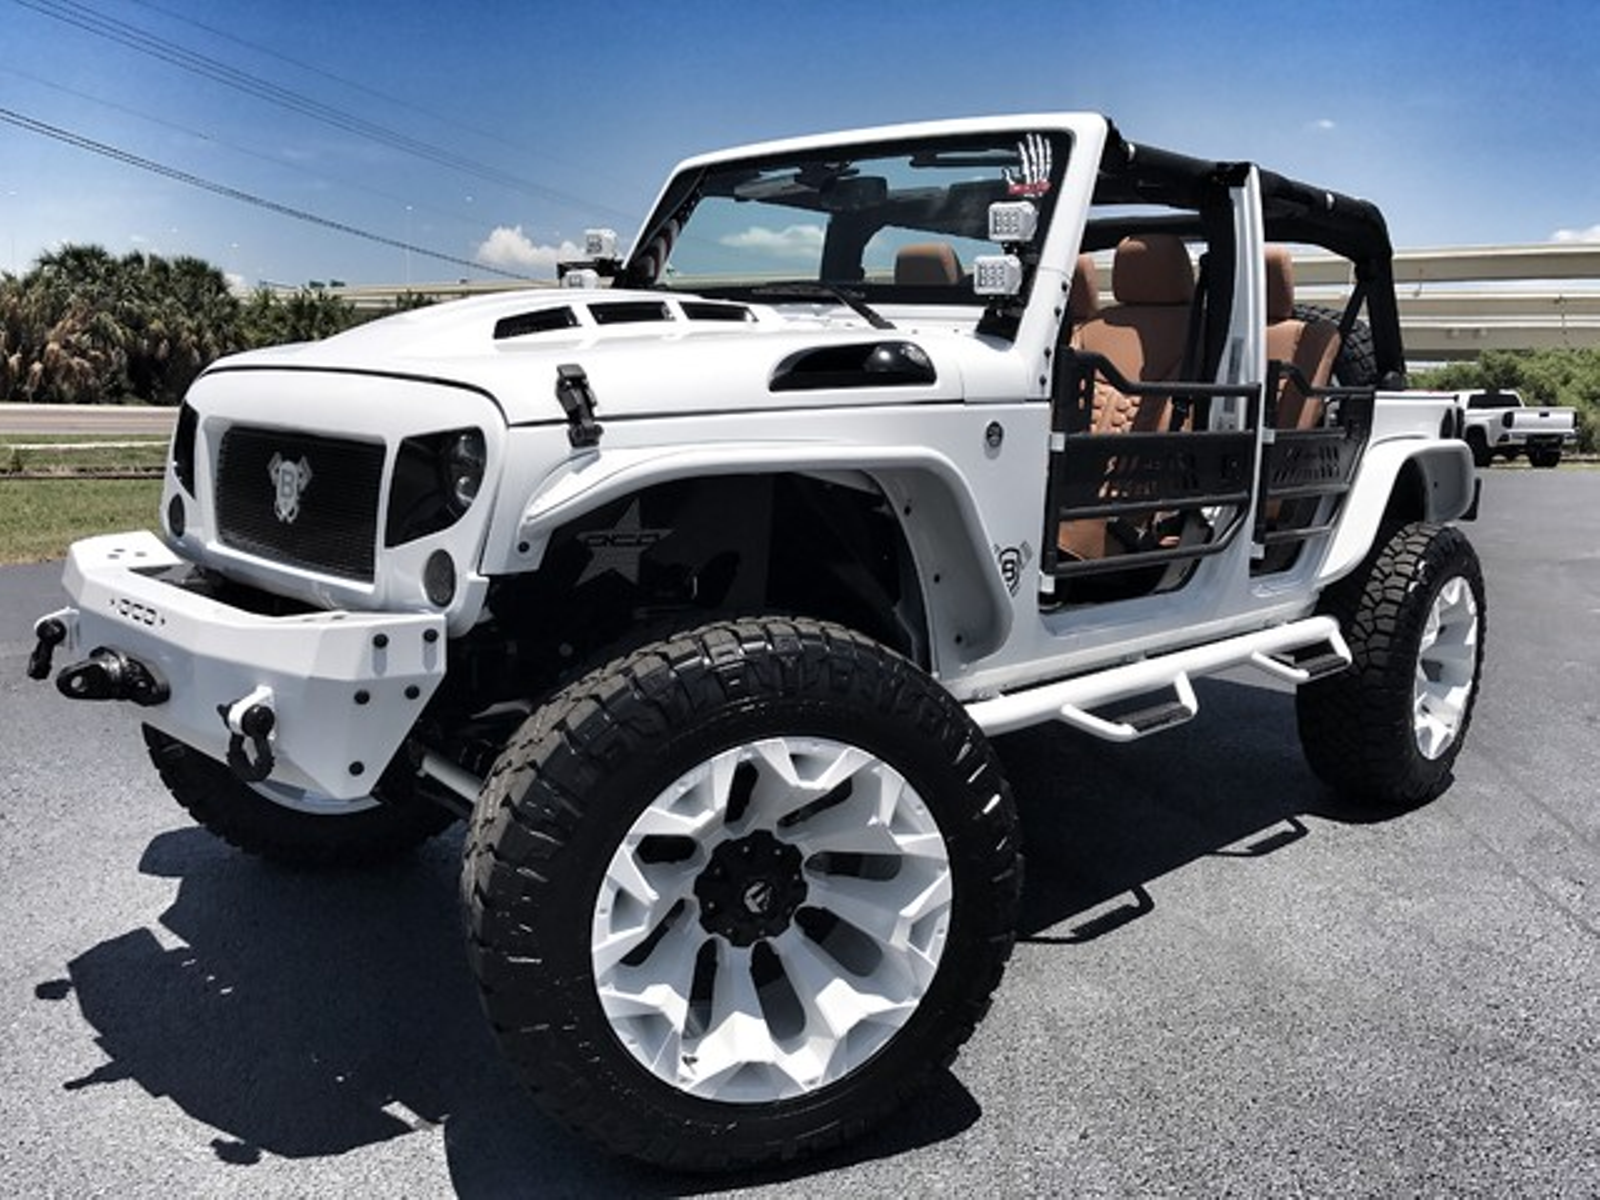 2017 jeep wrangler unlimited white out custom lifted leather hardtop florida bayshore automotive. Black Bedroom Furniture Sets. Home Design Ideas